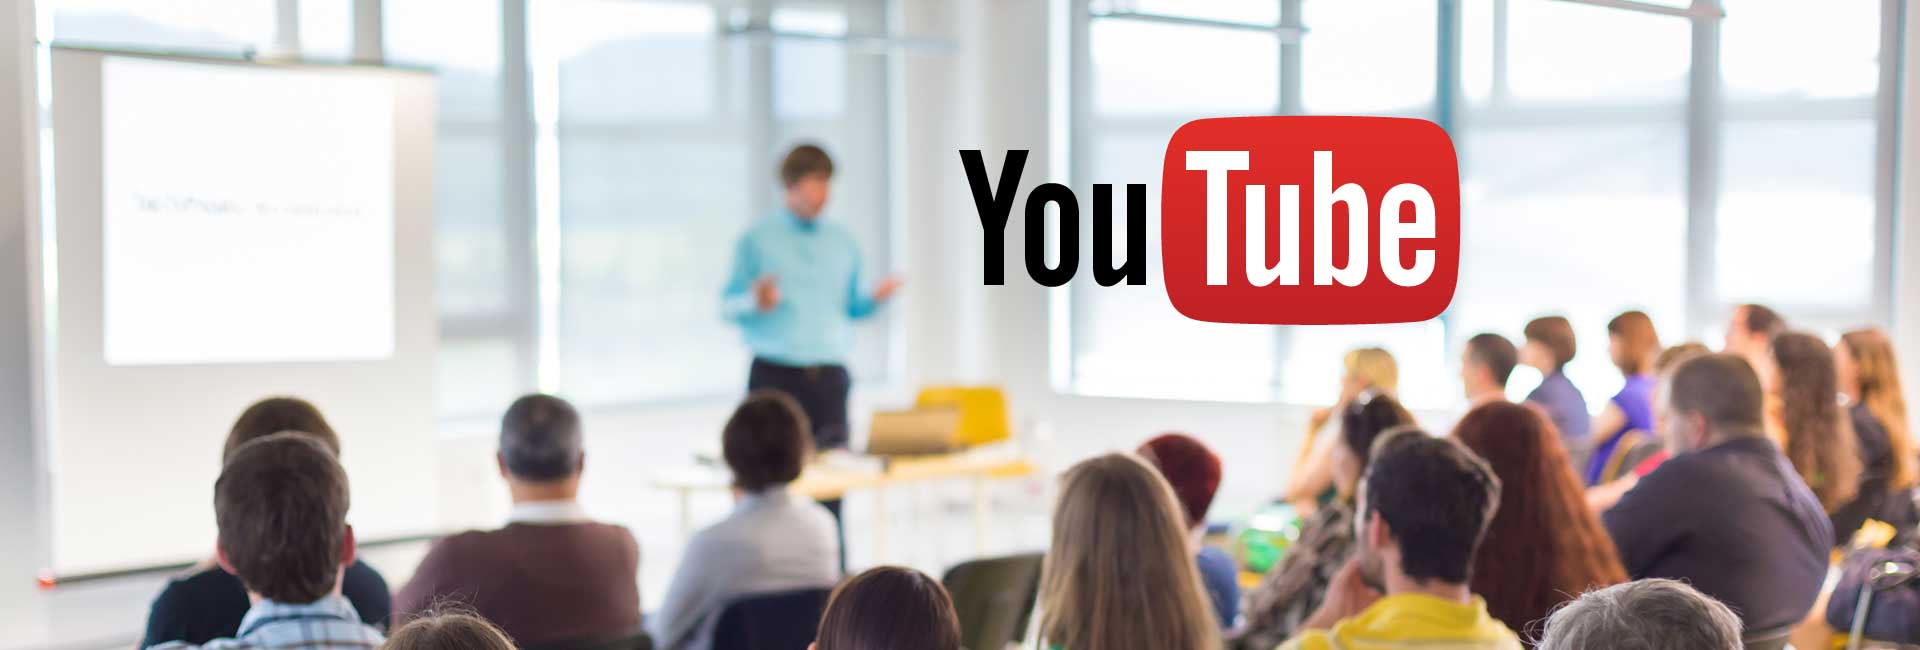 YouTube streaming company youtube webcasting company to stream to youtube professional video production to stream to youtube 360 live